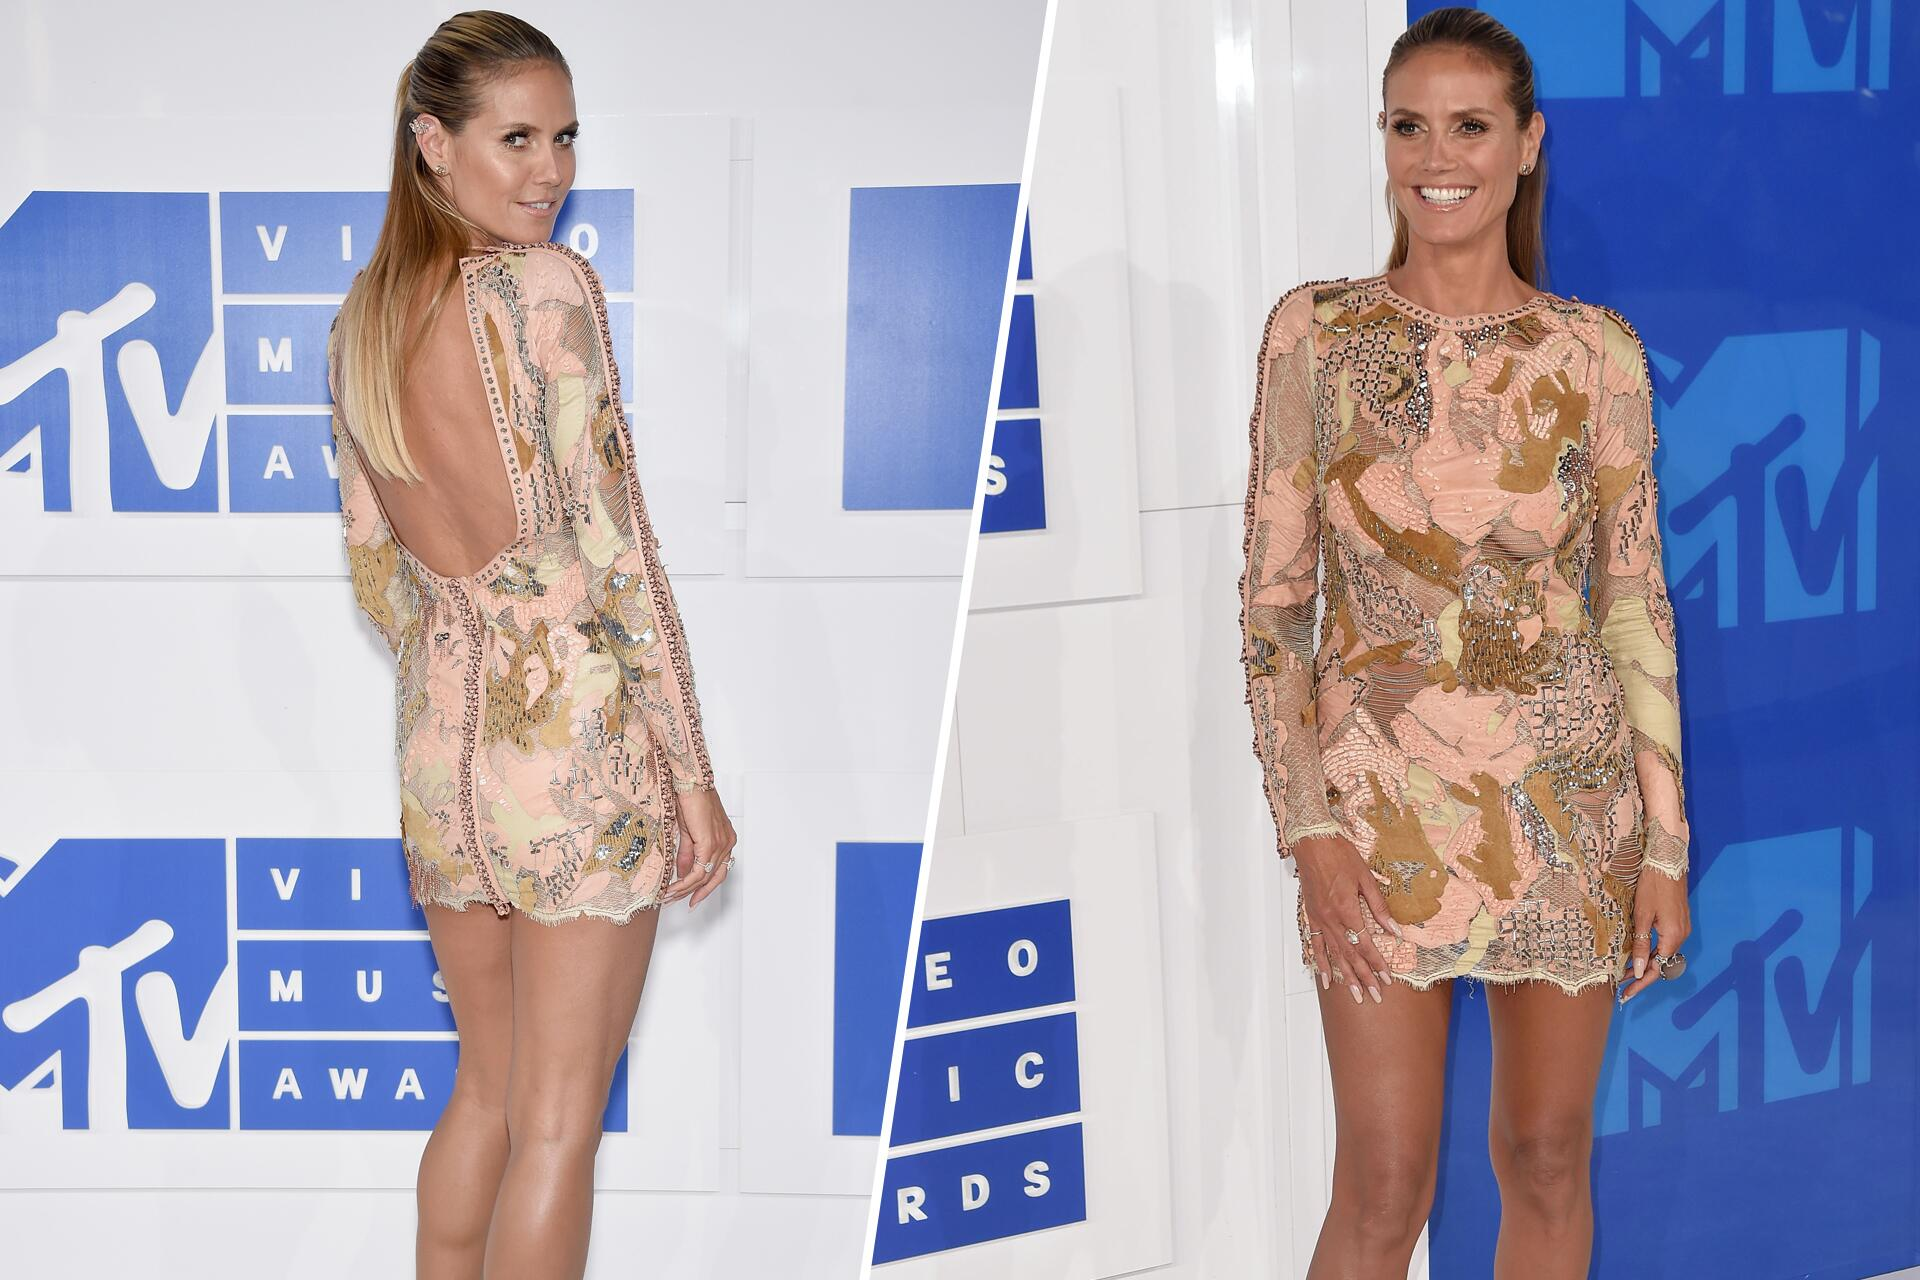 Bild zu Heidi Klum, MTV Video Music Awards, 2016